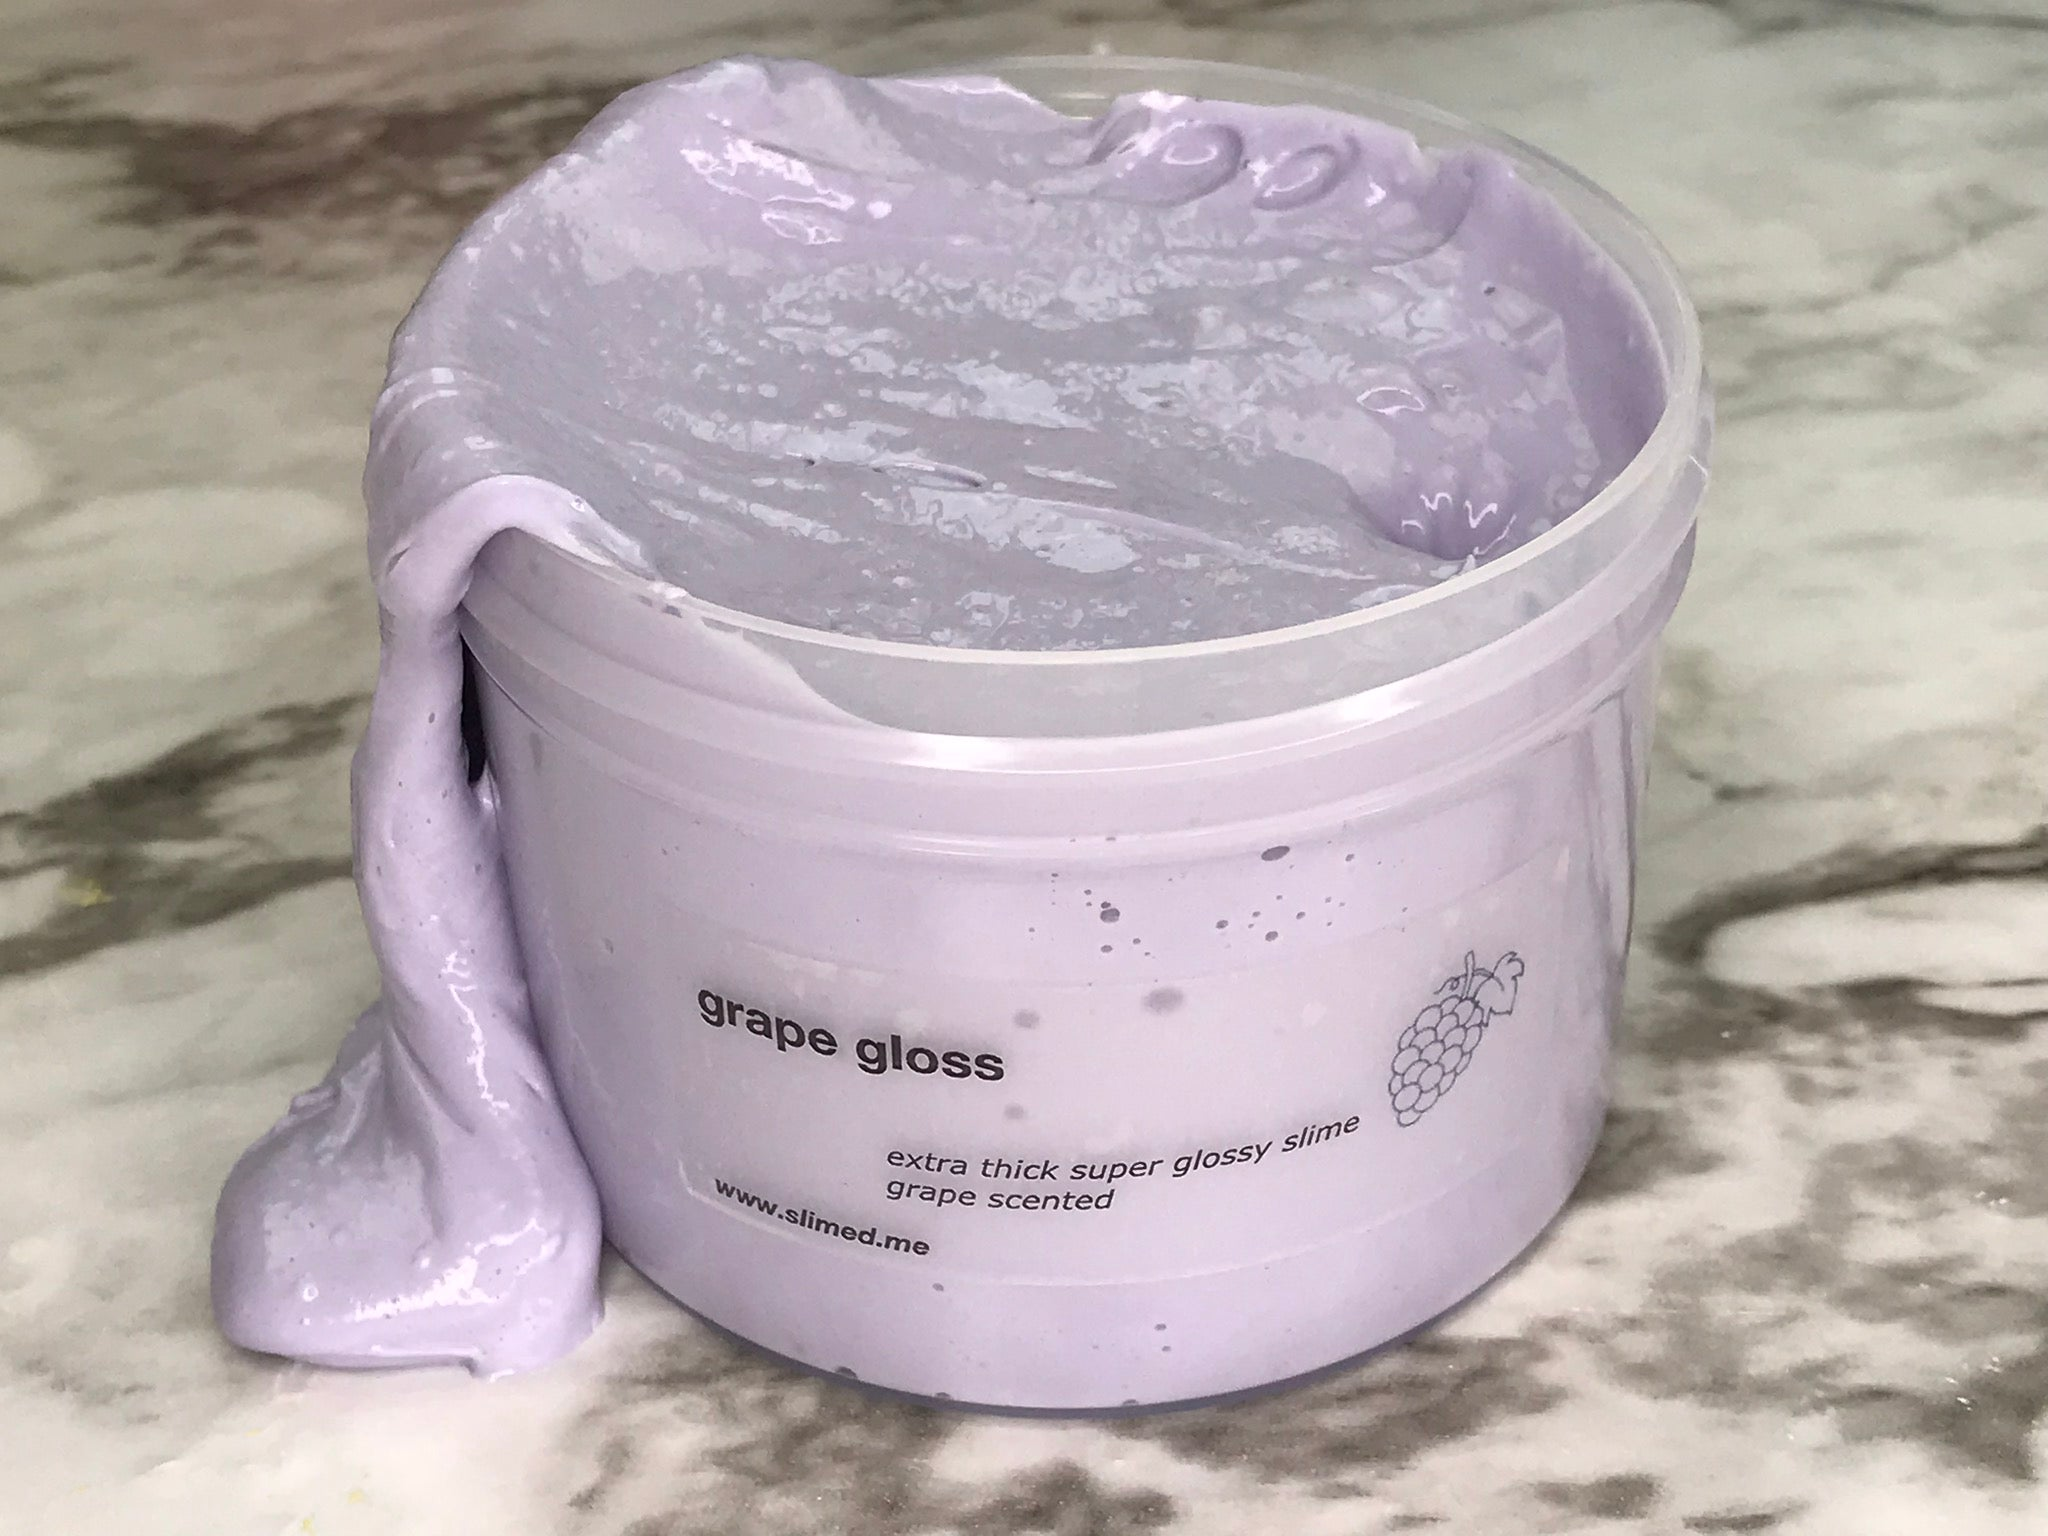 Grape Gloss